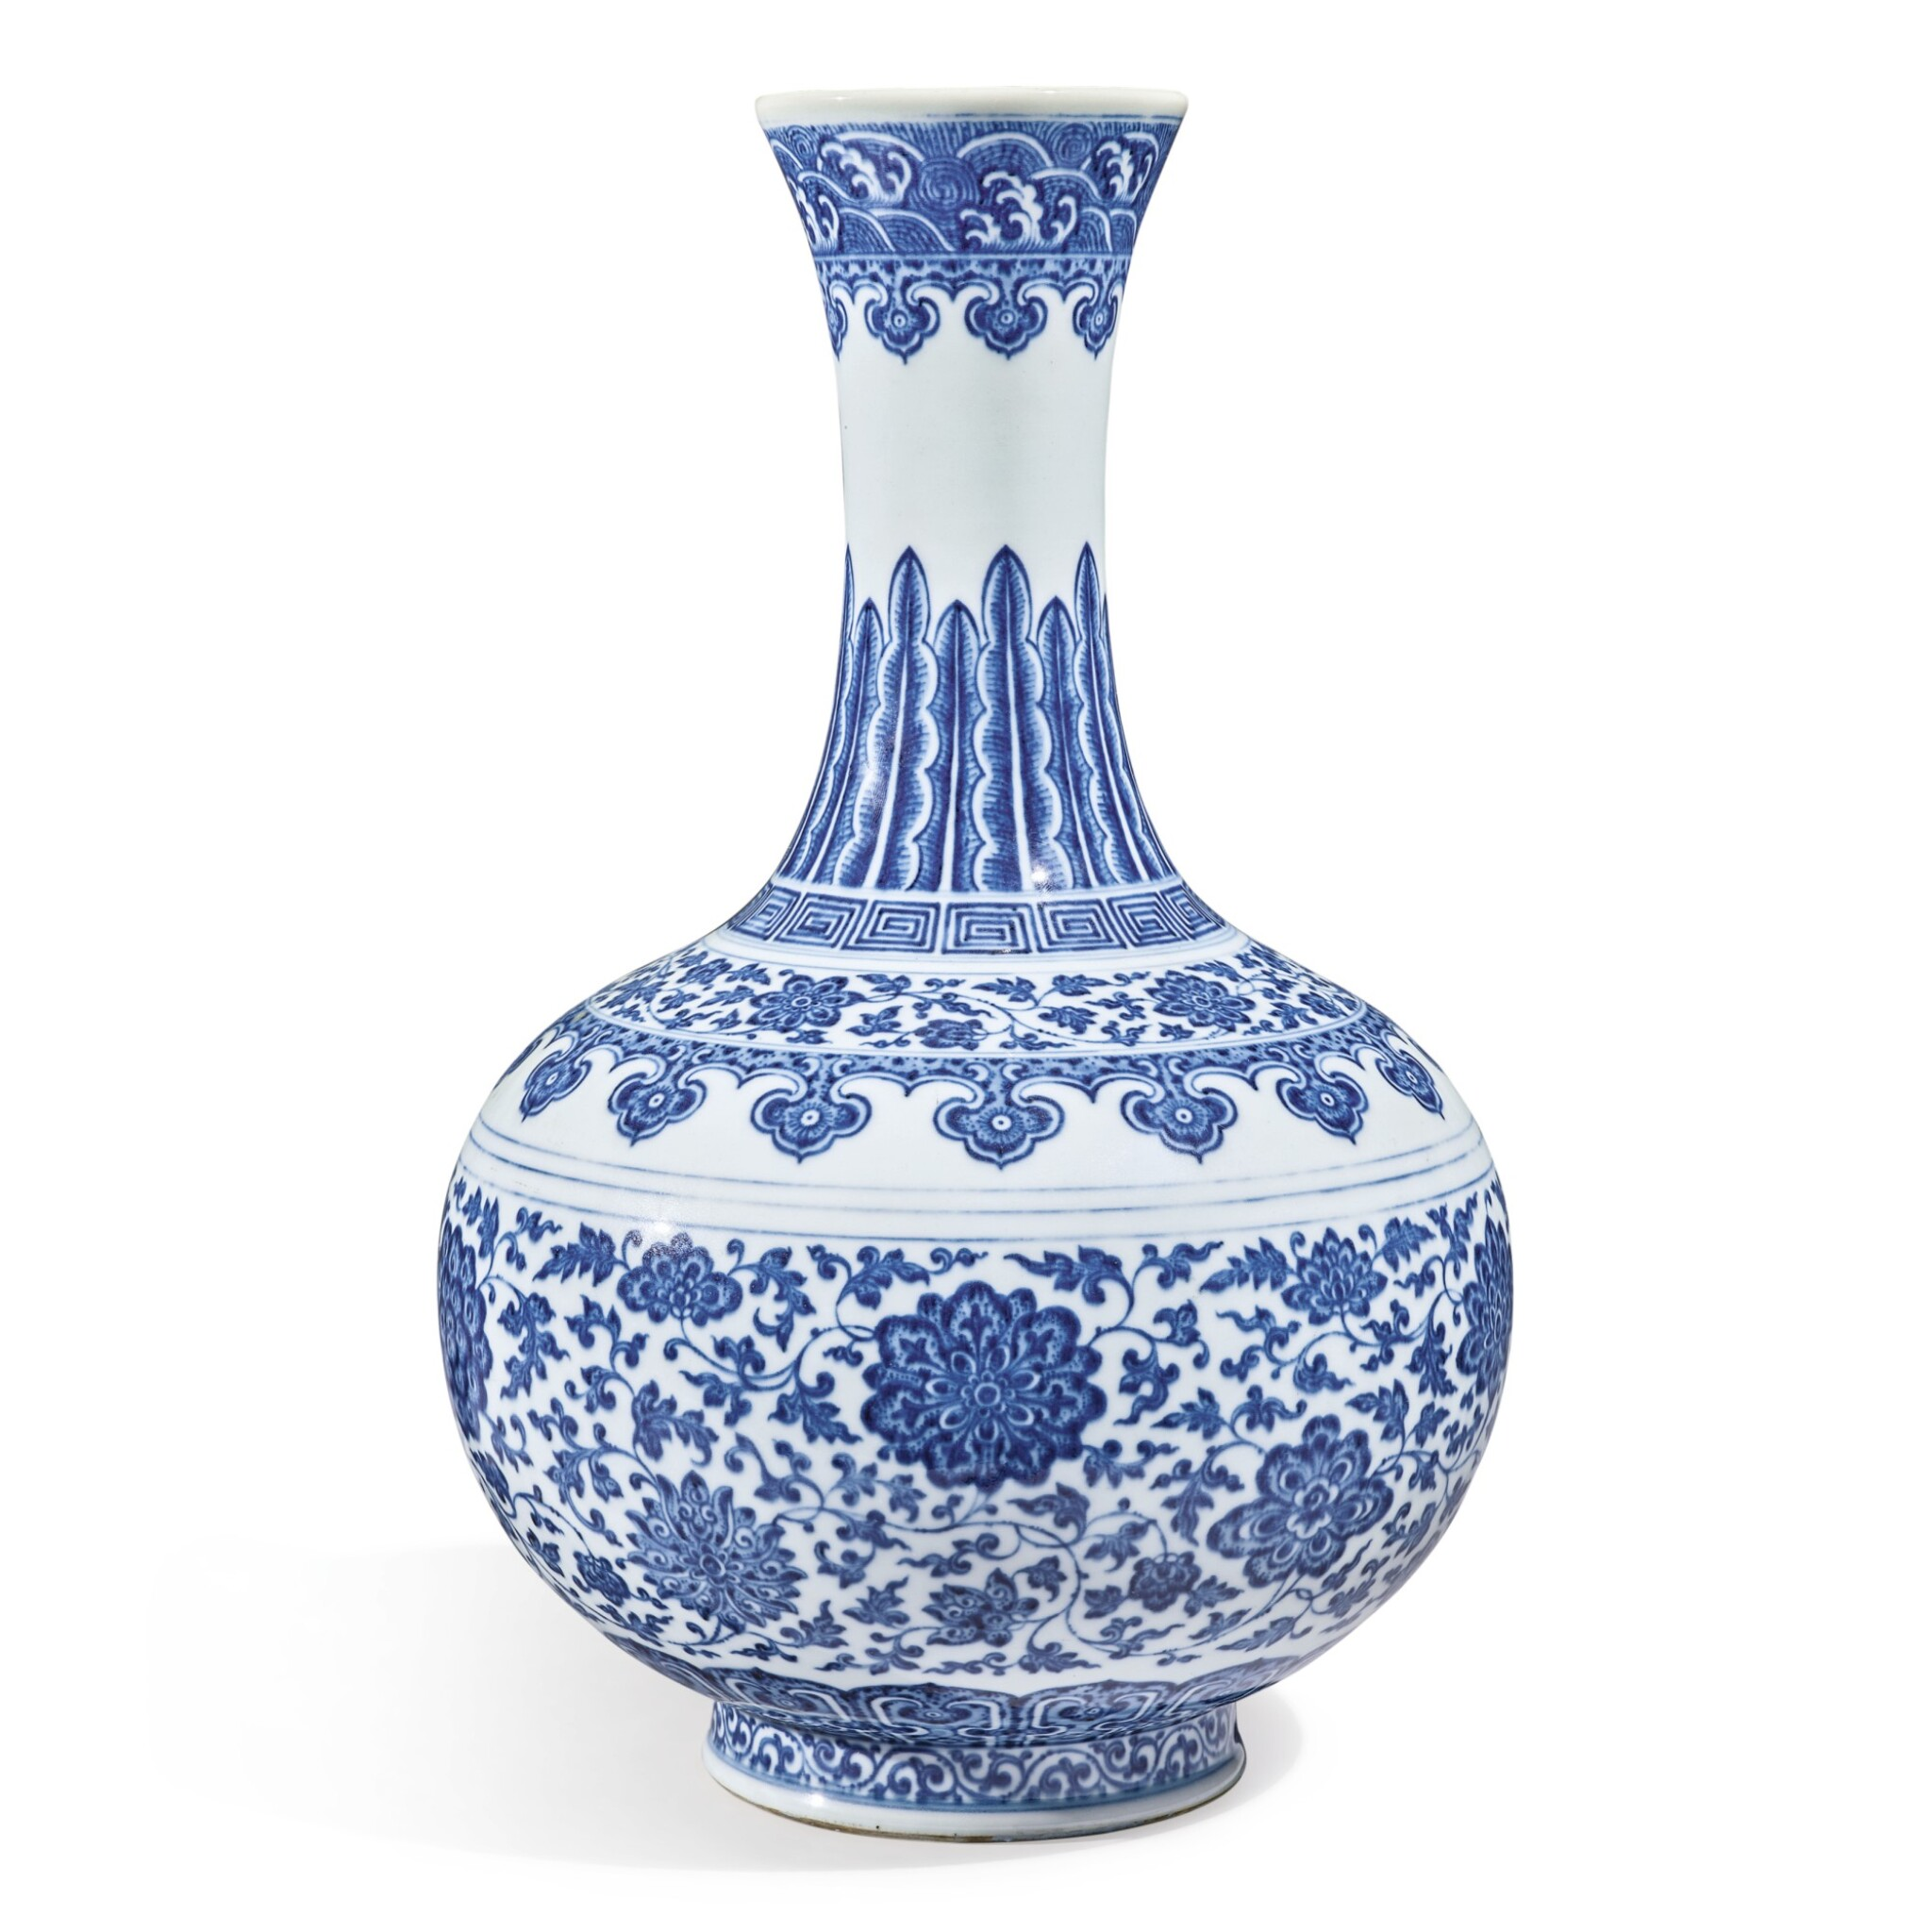 View full screen - View 1 of Lot 147. A Ming-style blue and white bottle vase, Qianlong seal mark and period   清乾隆 青花纏枝蓮紋賞瓶  《大清乾隆年製》款.